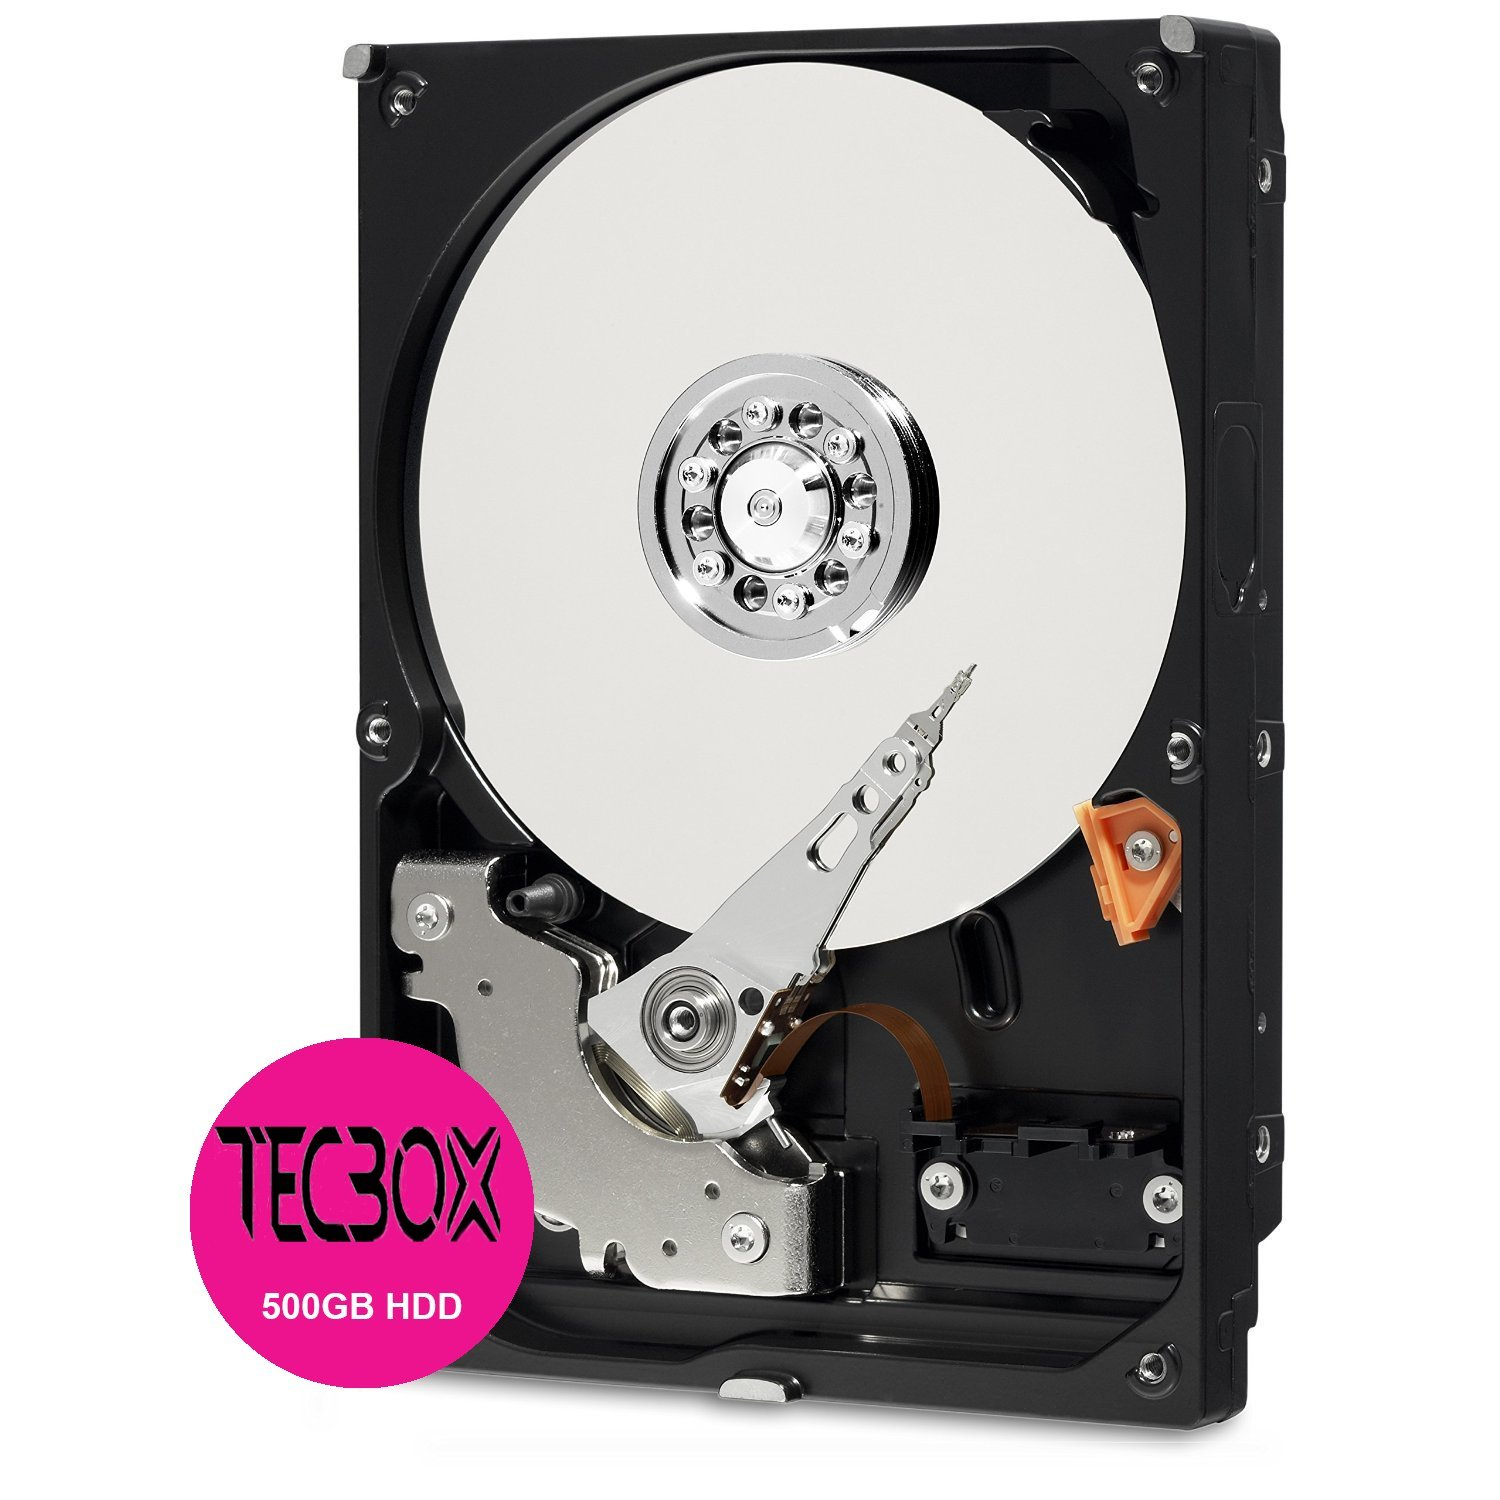 TECBOX 500GB SATA 6 Gb/s 7200 RPM 64MB Cache 3.5 Inch Desktop Internal Hard Drive by TECBOX